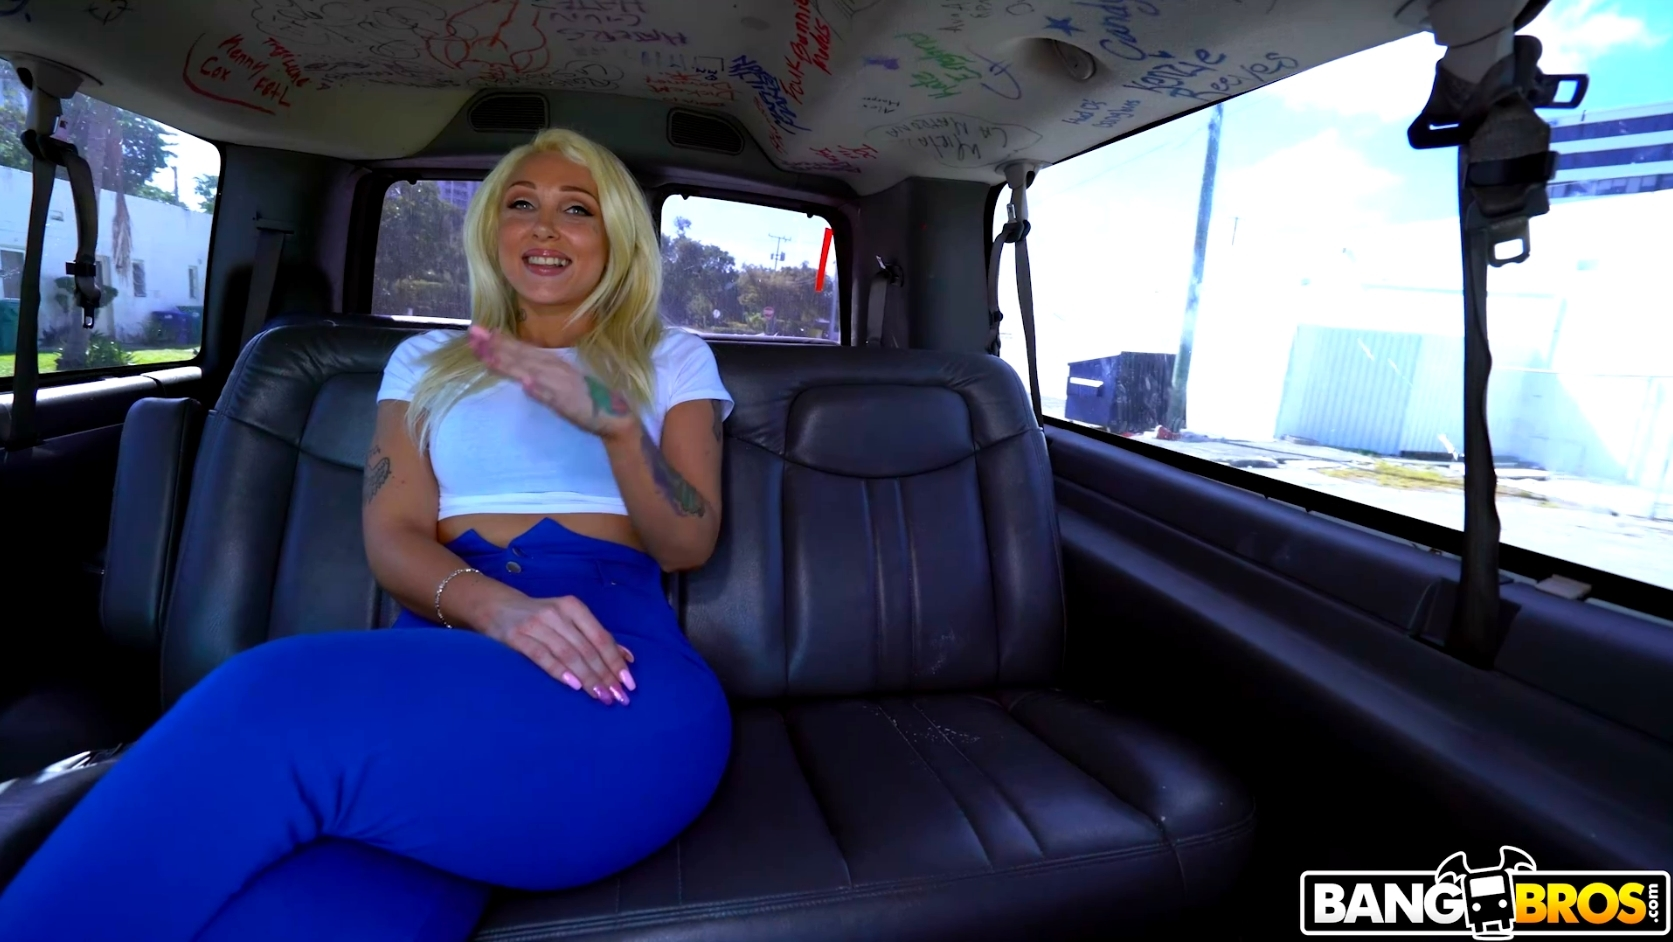 bangbus 18 02 21 alexis andrews porn - free download now!